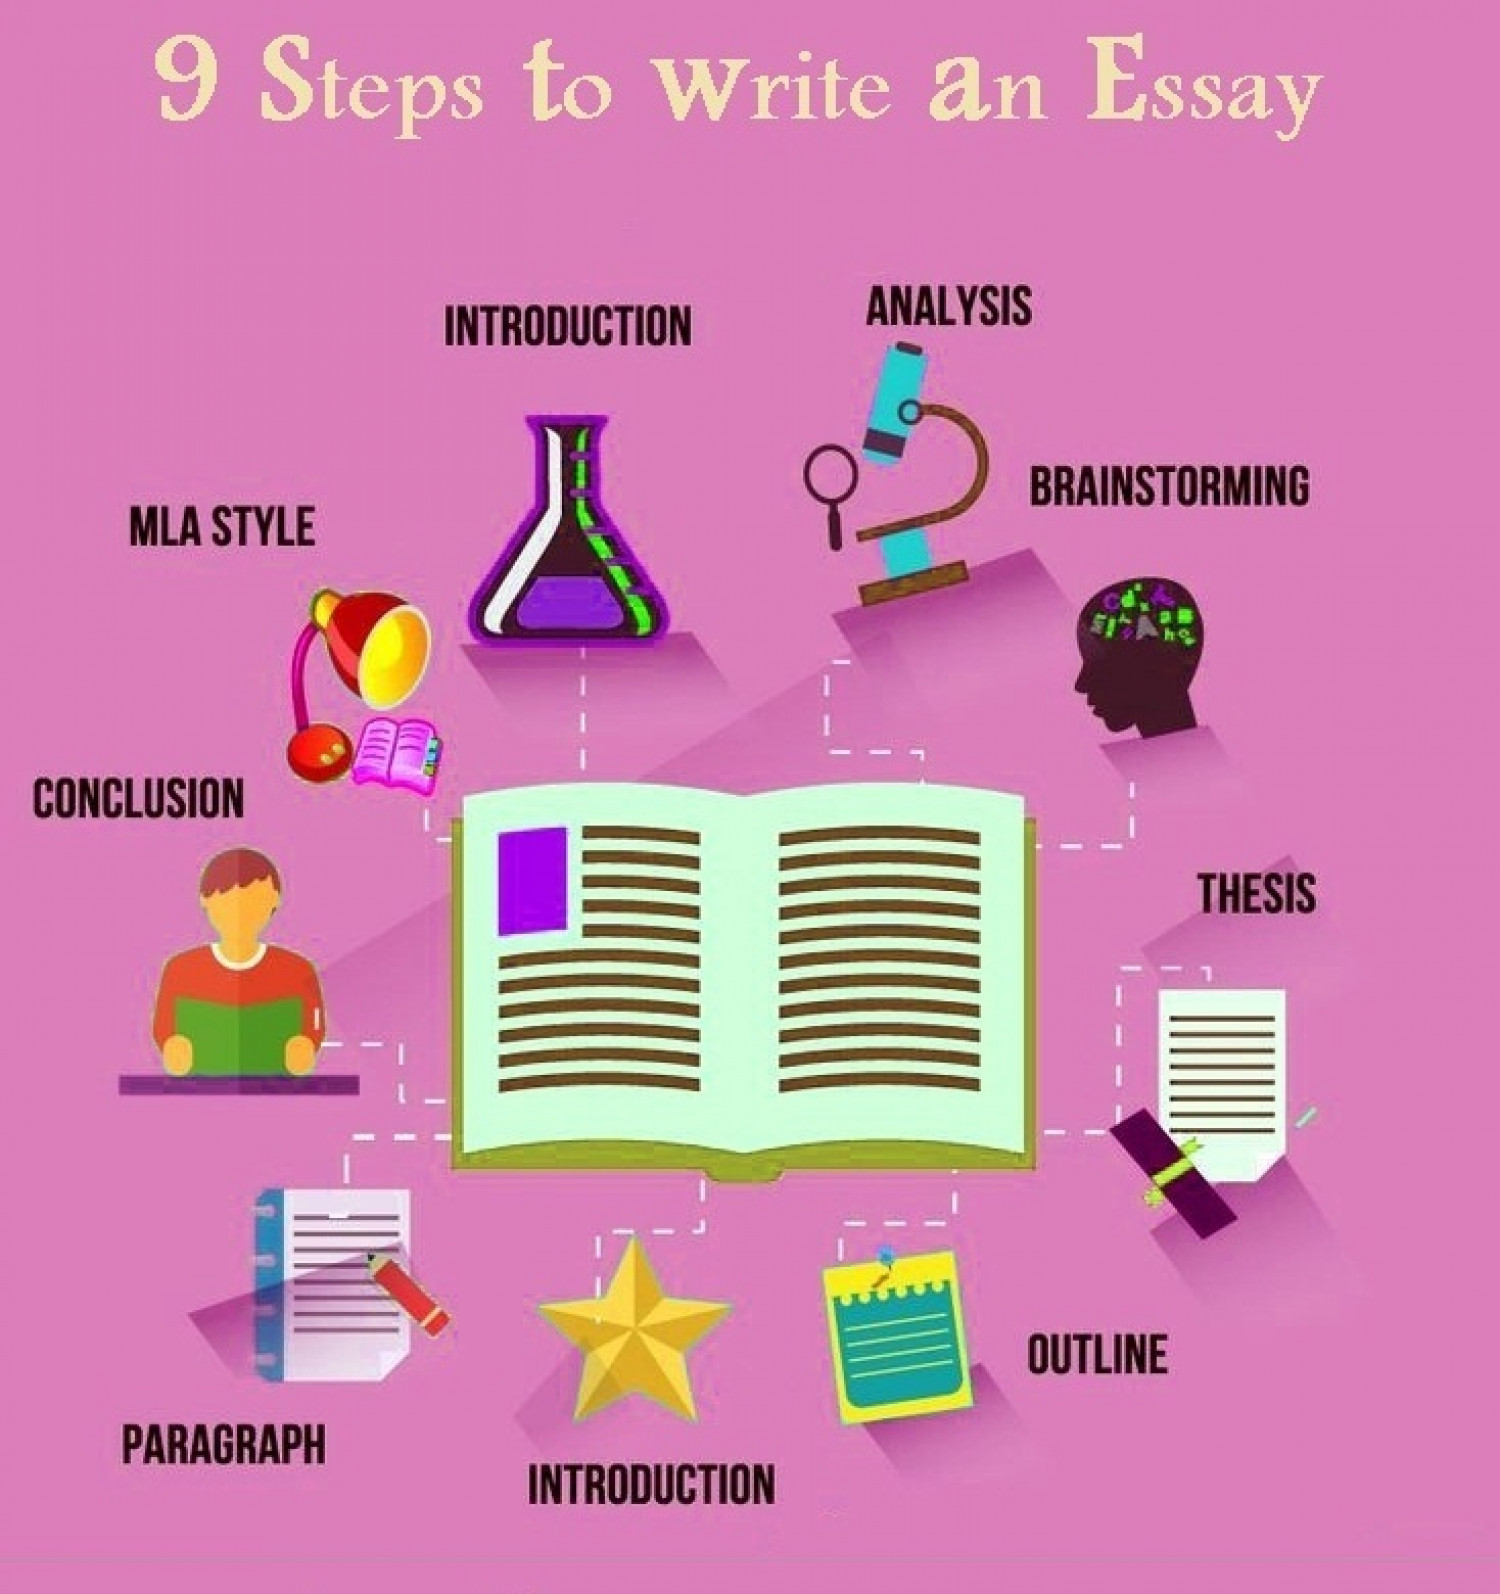 easy essay writing steps Iii contents acknowledgments vii introduction ix 1 the foundation 1 reasons for writing 2 parts of an essay 4 next steps 5 2 getting started step 1: narrow your focus.